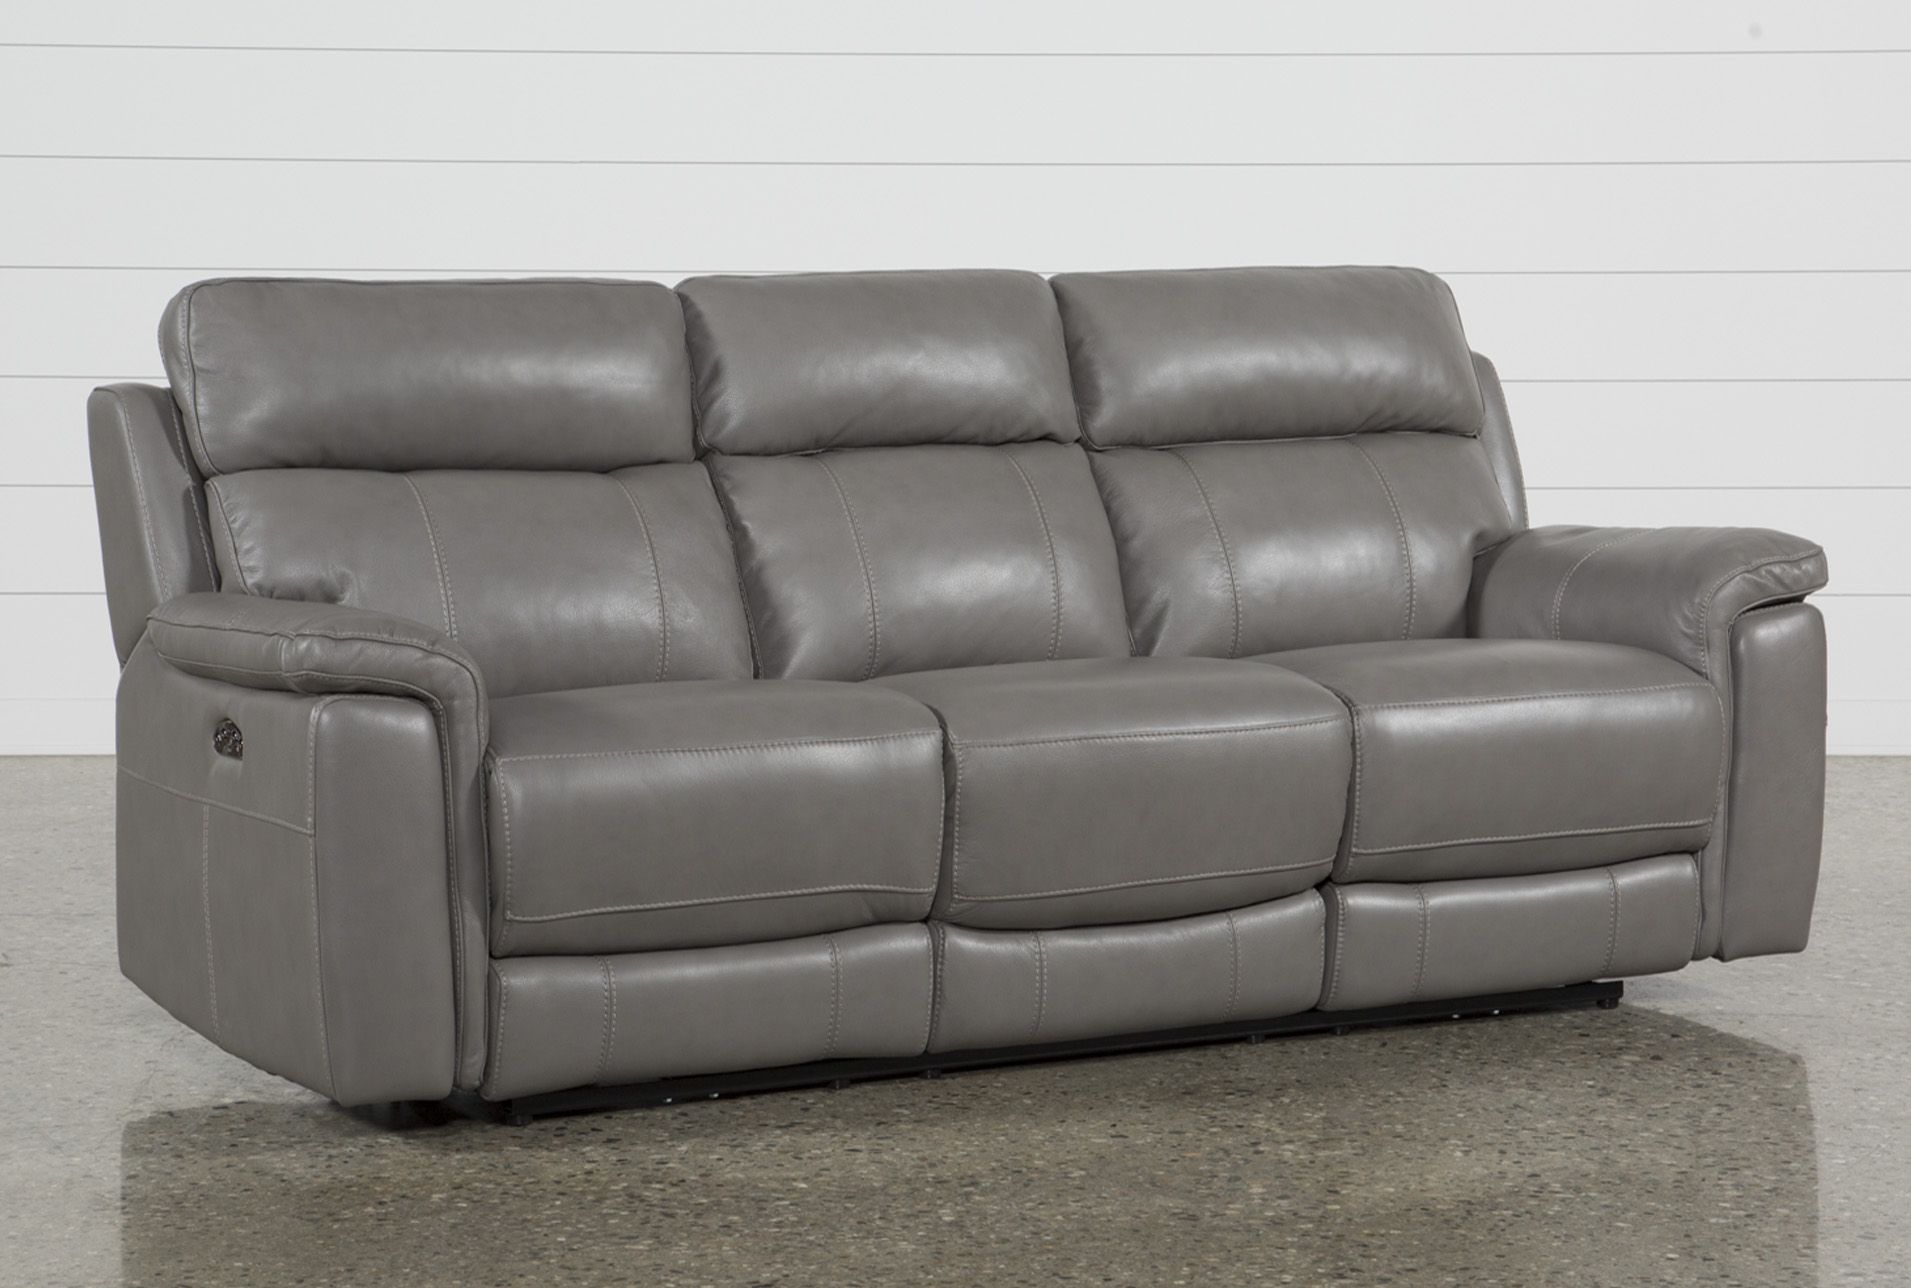 Stupendous Dino Grey Leather Power Reclining Sofa W Power Headrest Caraccident5 Cool Chair Designs And Ideas Caraccident5Info